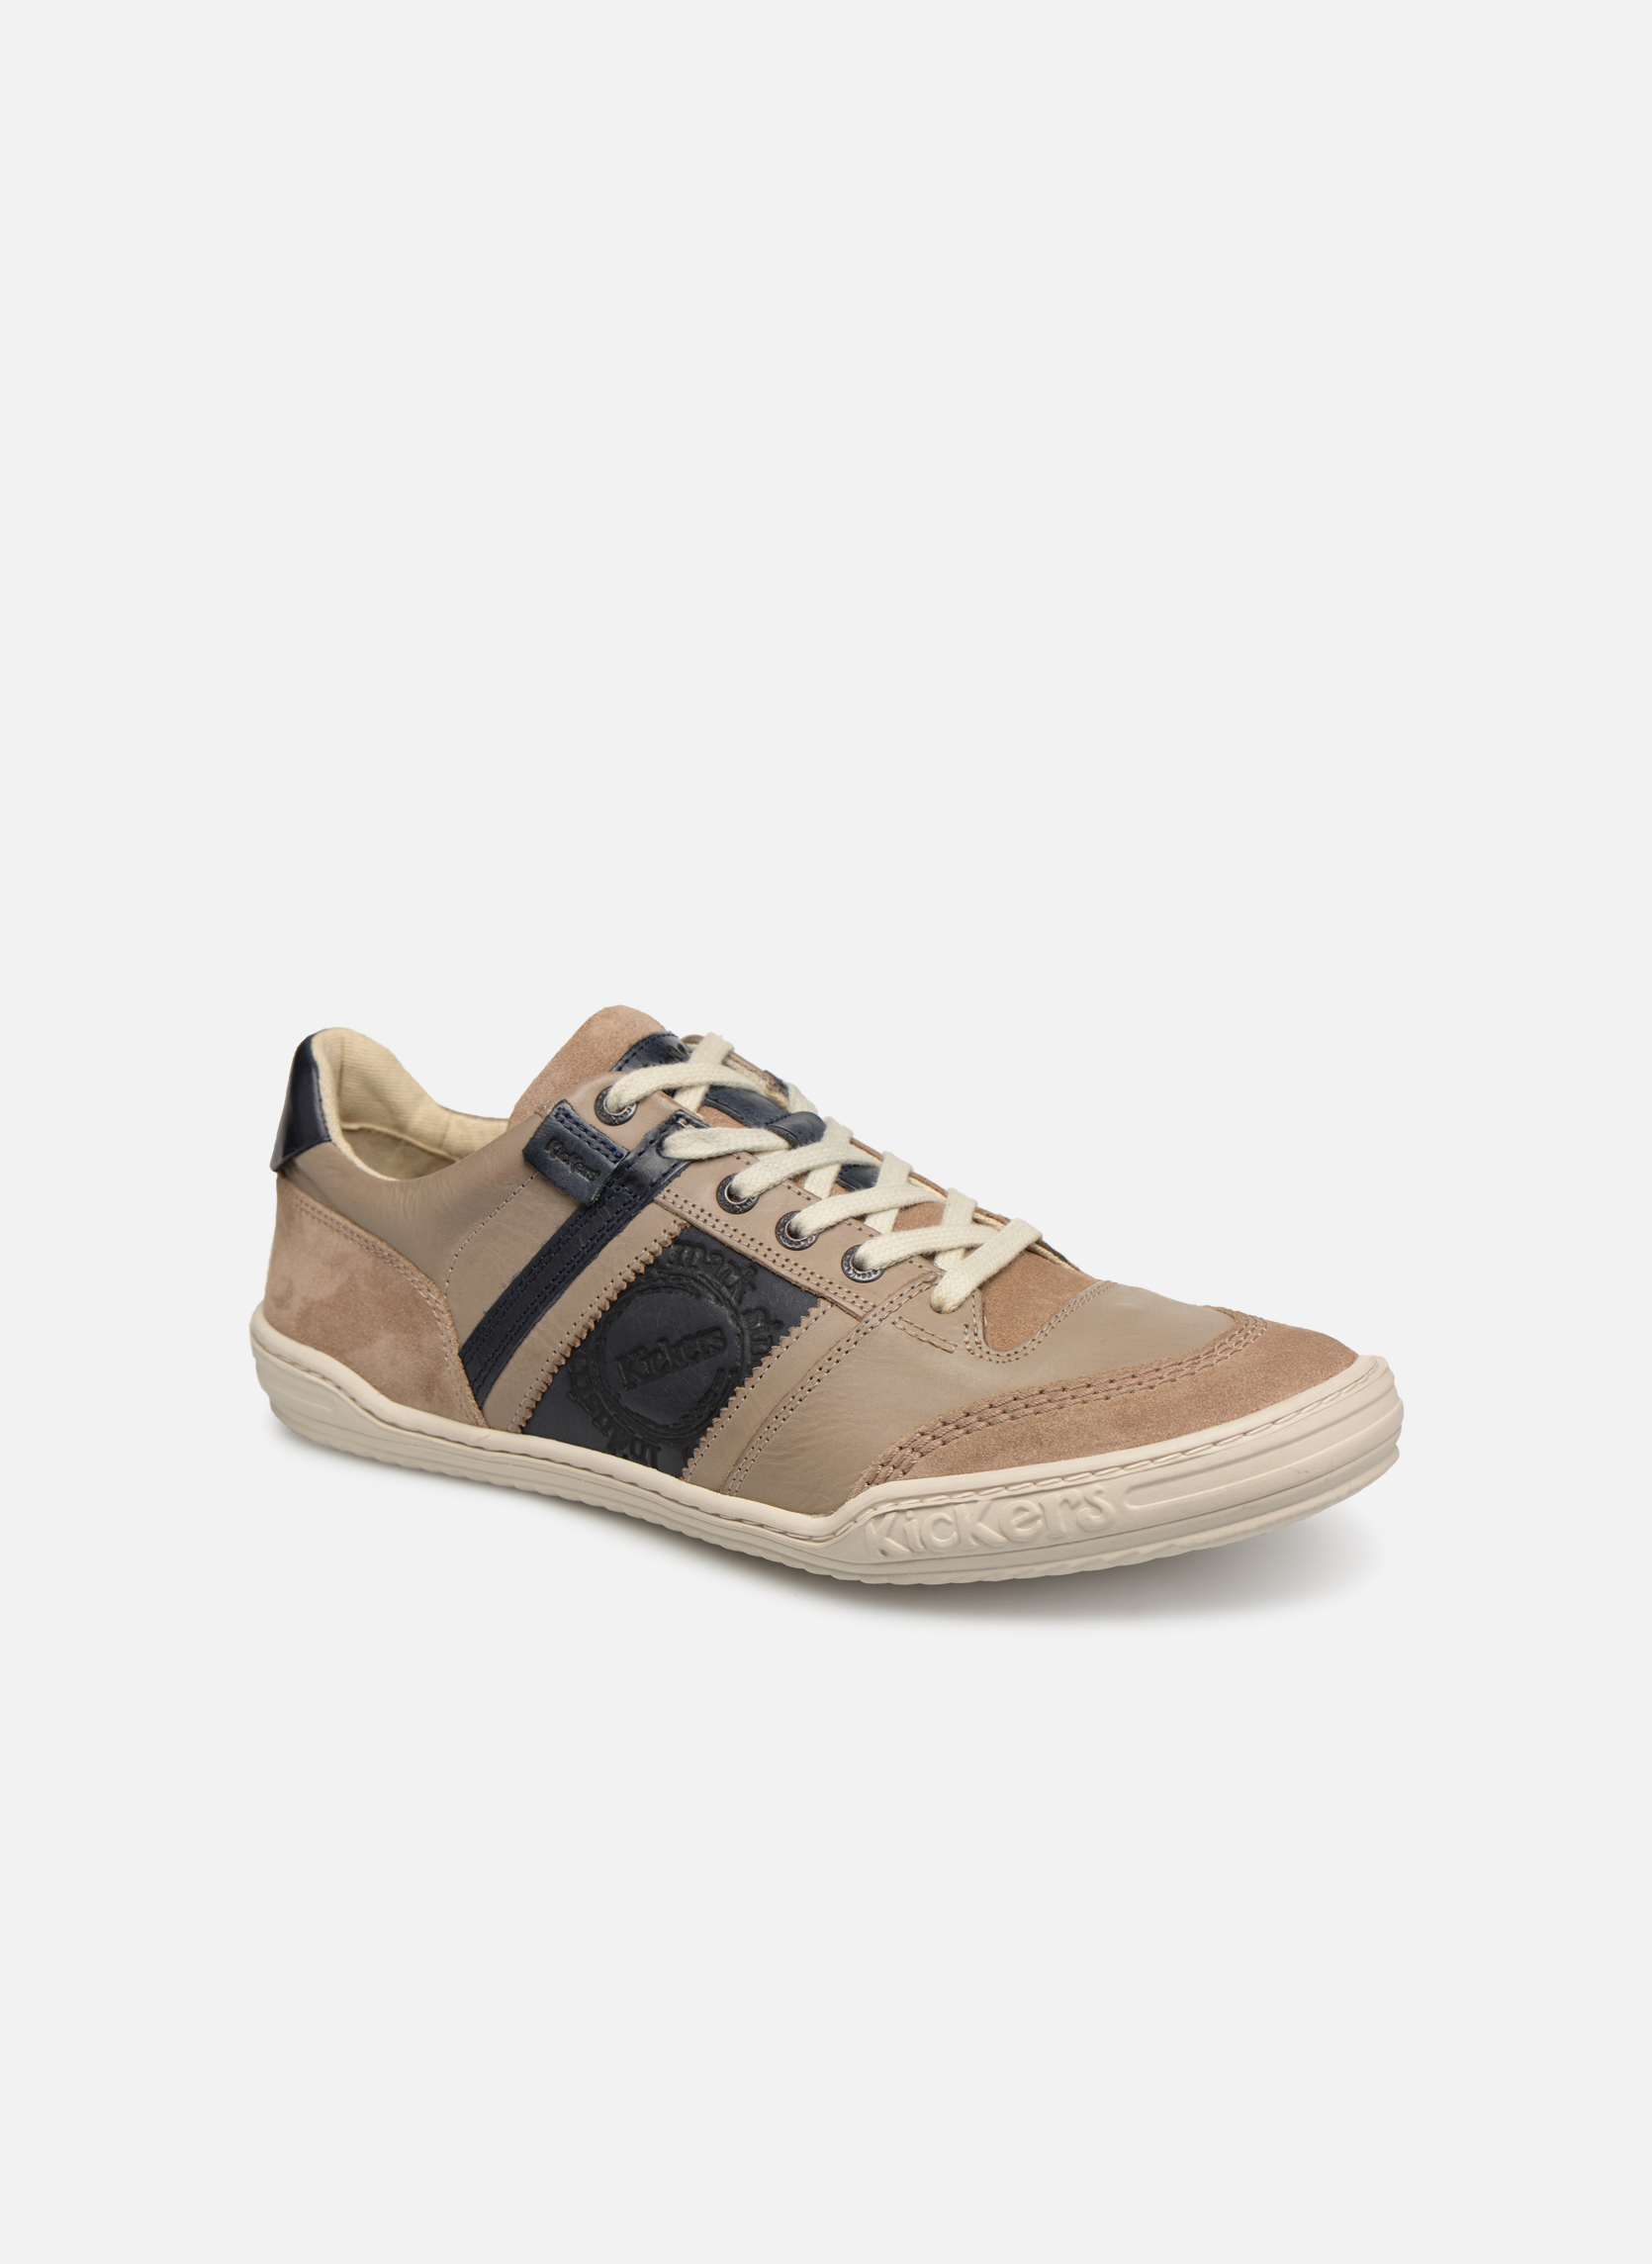 Sneakers Kickers Beige